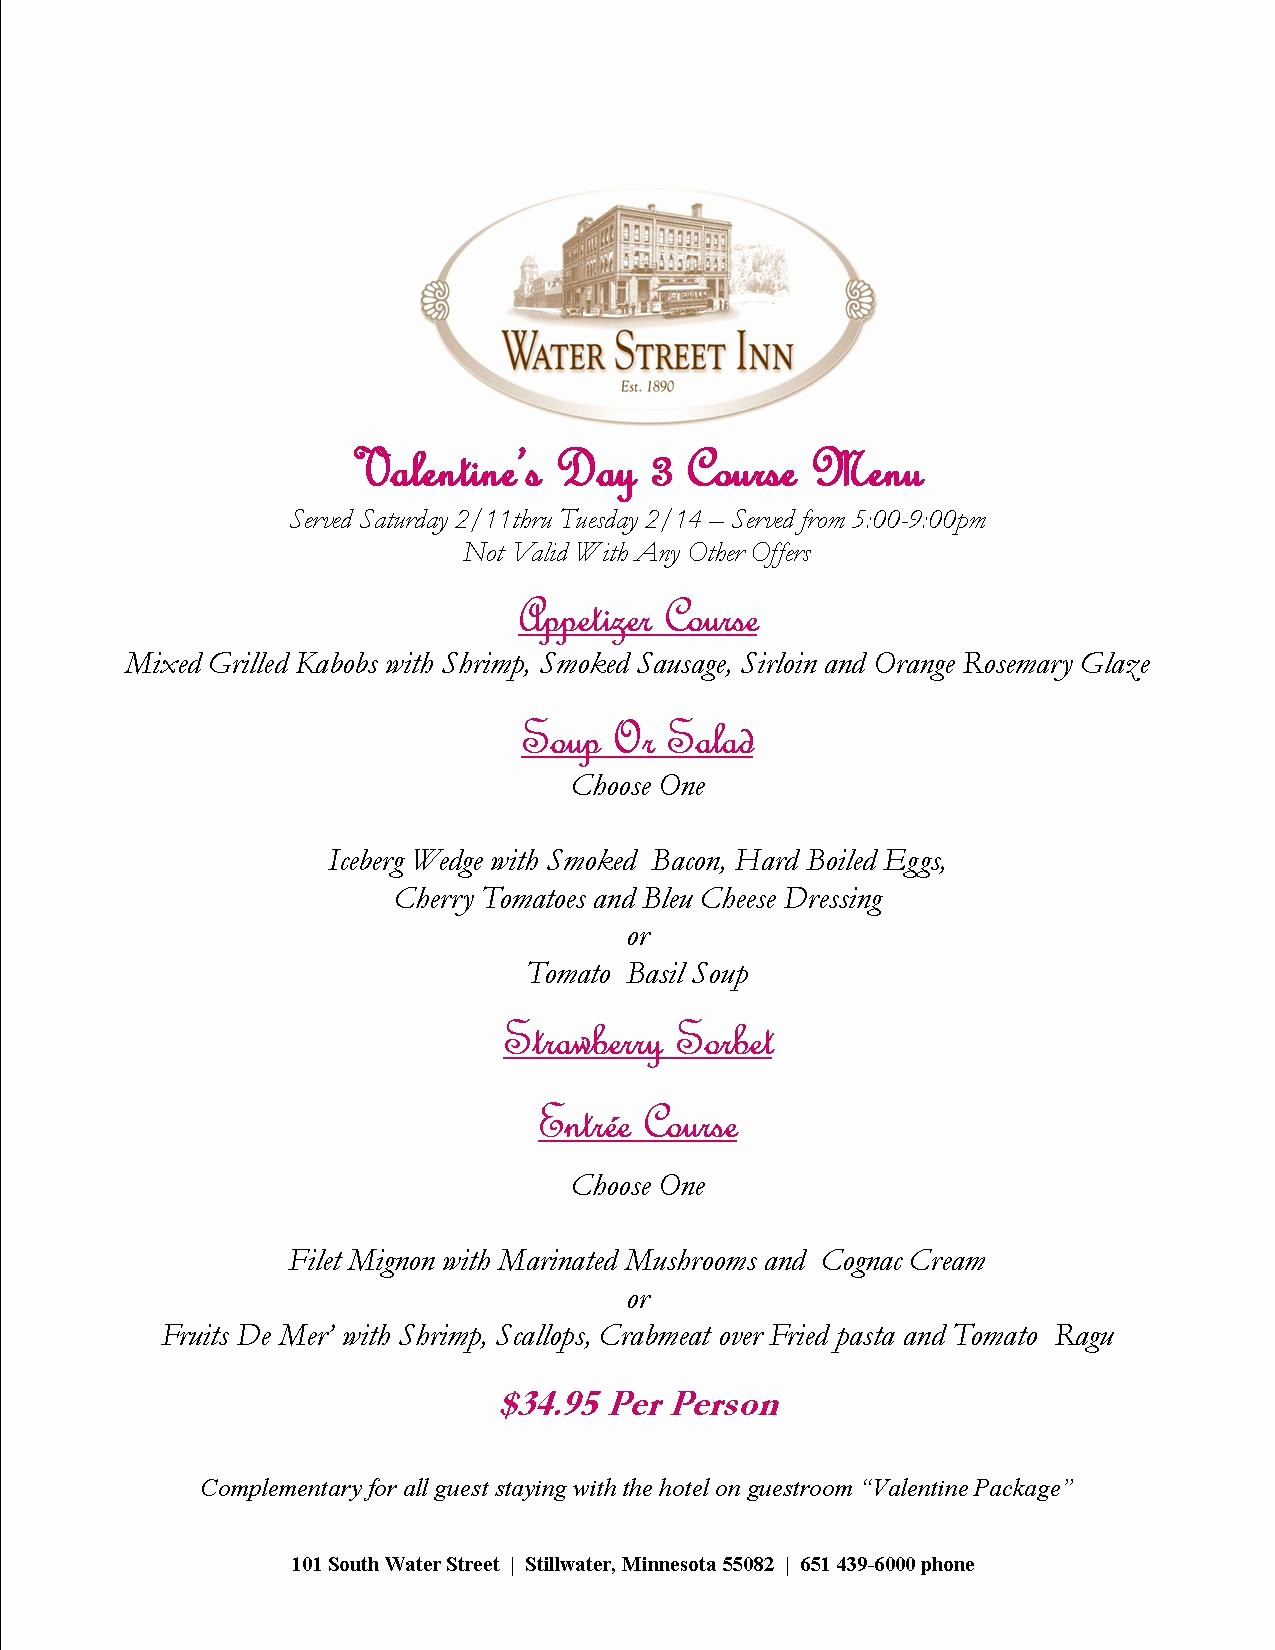 3 Course Meal Menu Templates Best Of Valentine S Day Menu In Stillwater Mn